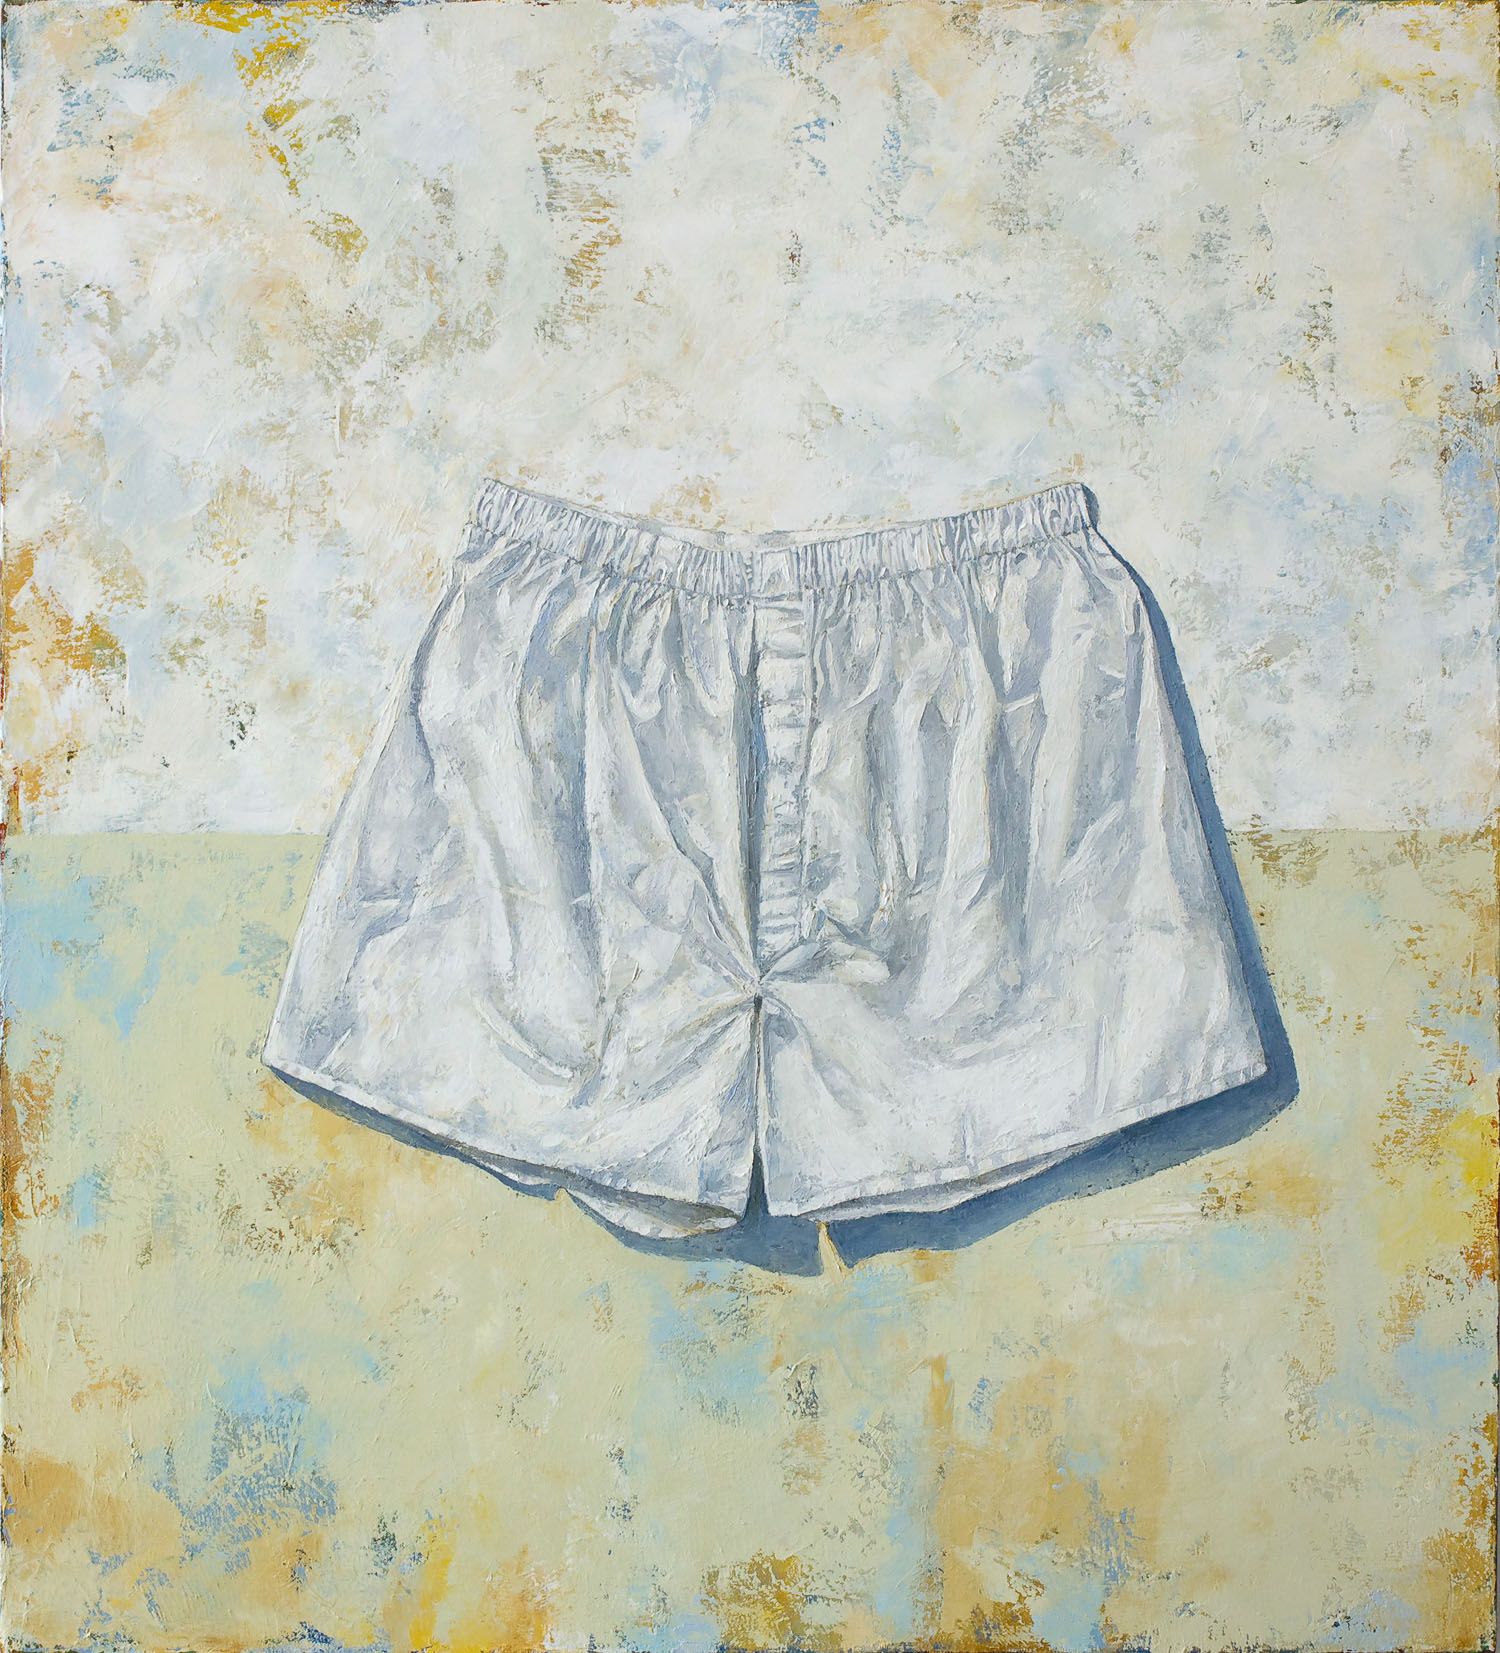 Steve's Shorts  2011 oil on canvas 44 x 40 inches  Private collection